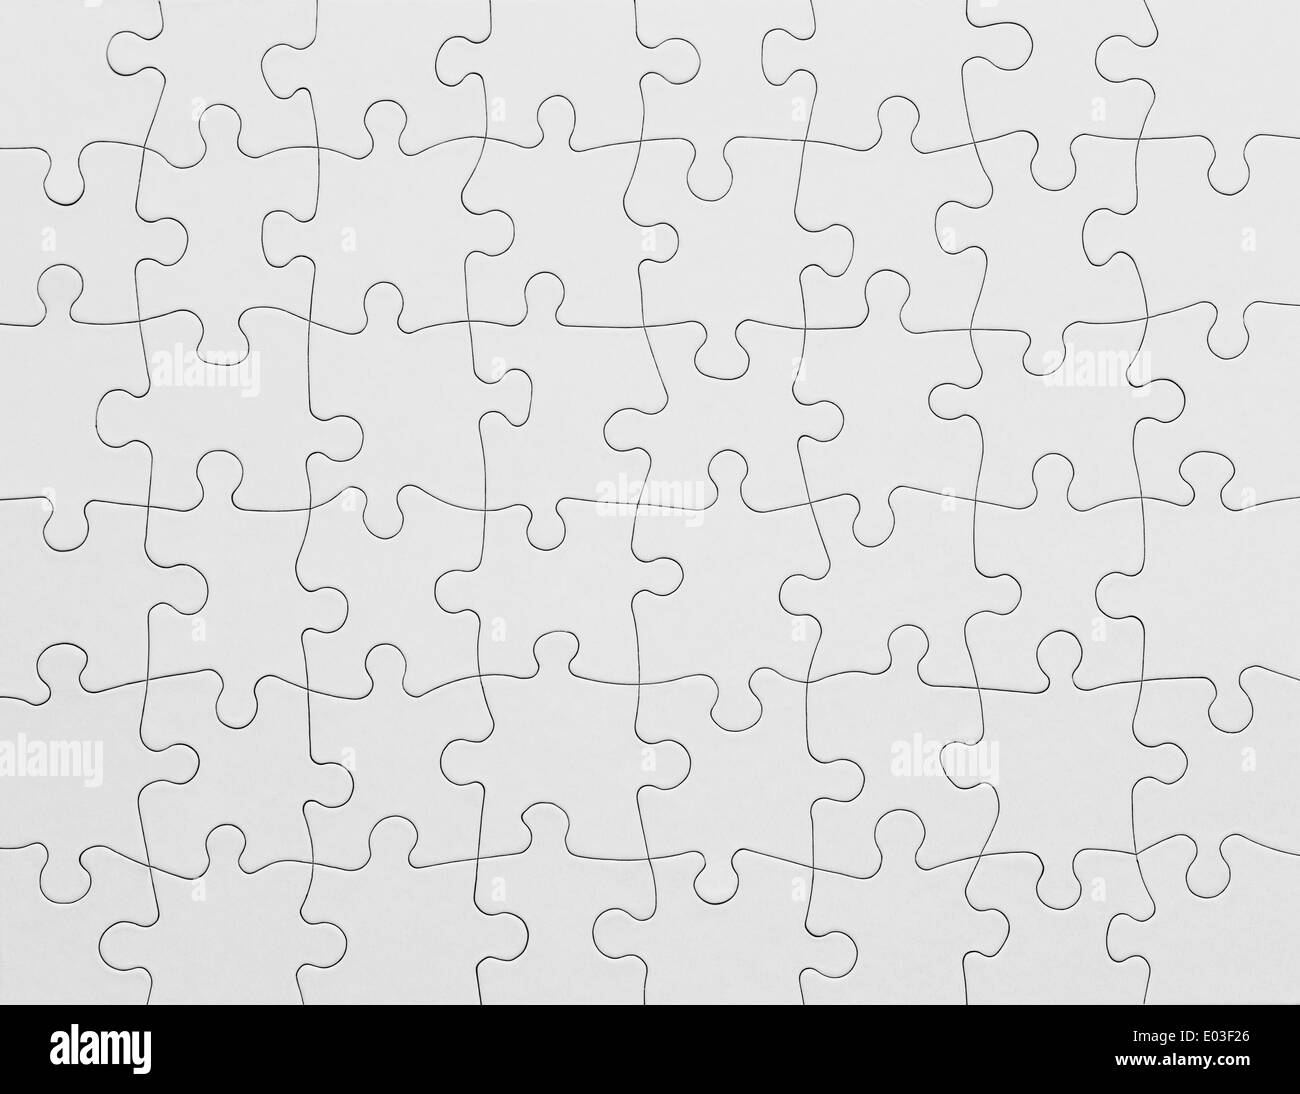 Complete White Puzzle with Copy Space. - Stock Image